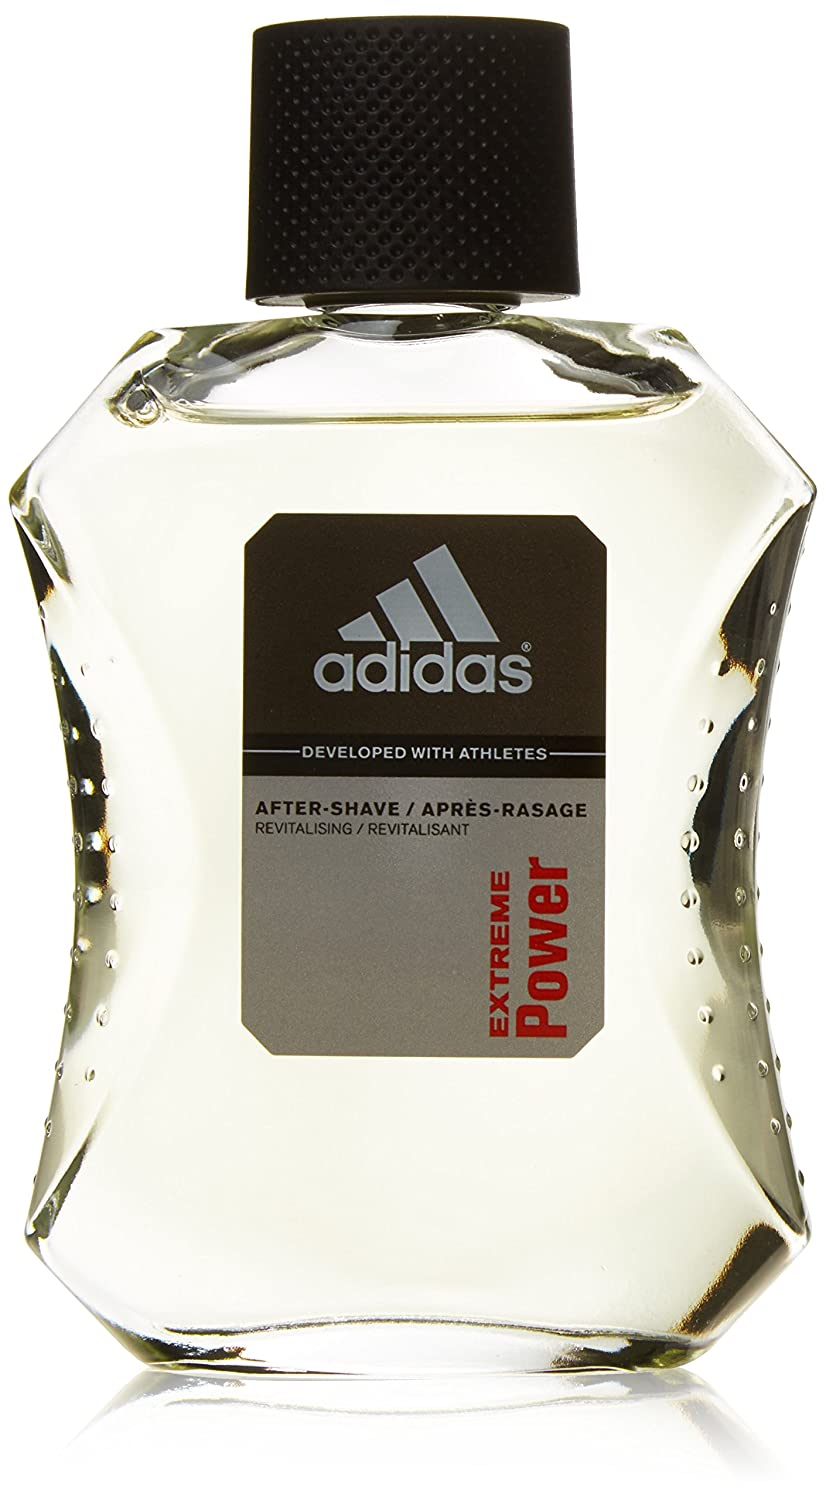 Adidas 31574 Extreme Power Aftershave - 1 Prodotto ADIDAS-852966